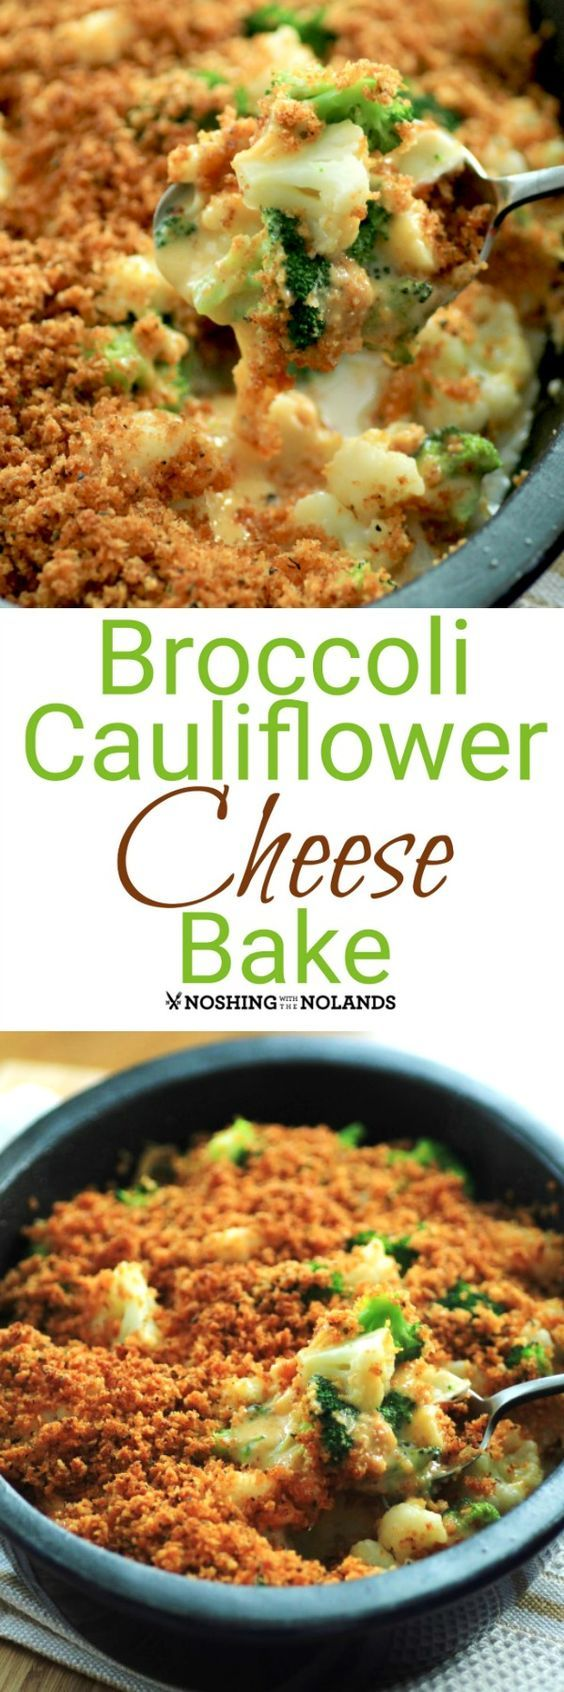 Broccoli Cauliflower Cheese Bake by Noshing With The Nolands is an easy to make,  scrumptious side dish for the holidays or any time of year!